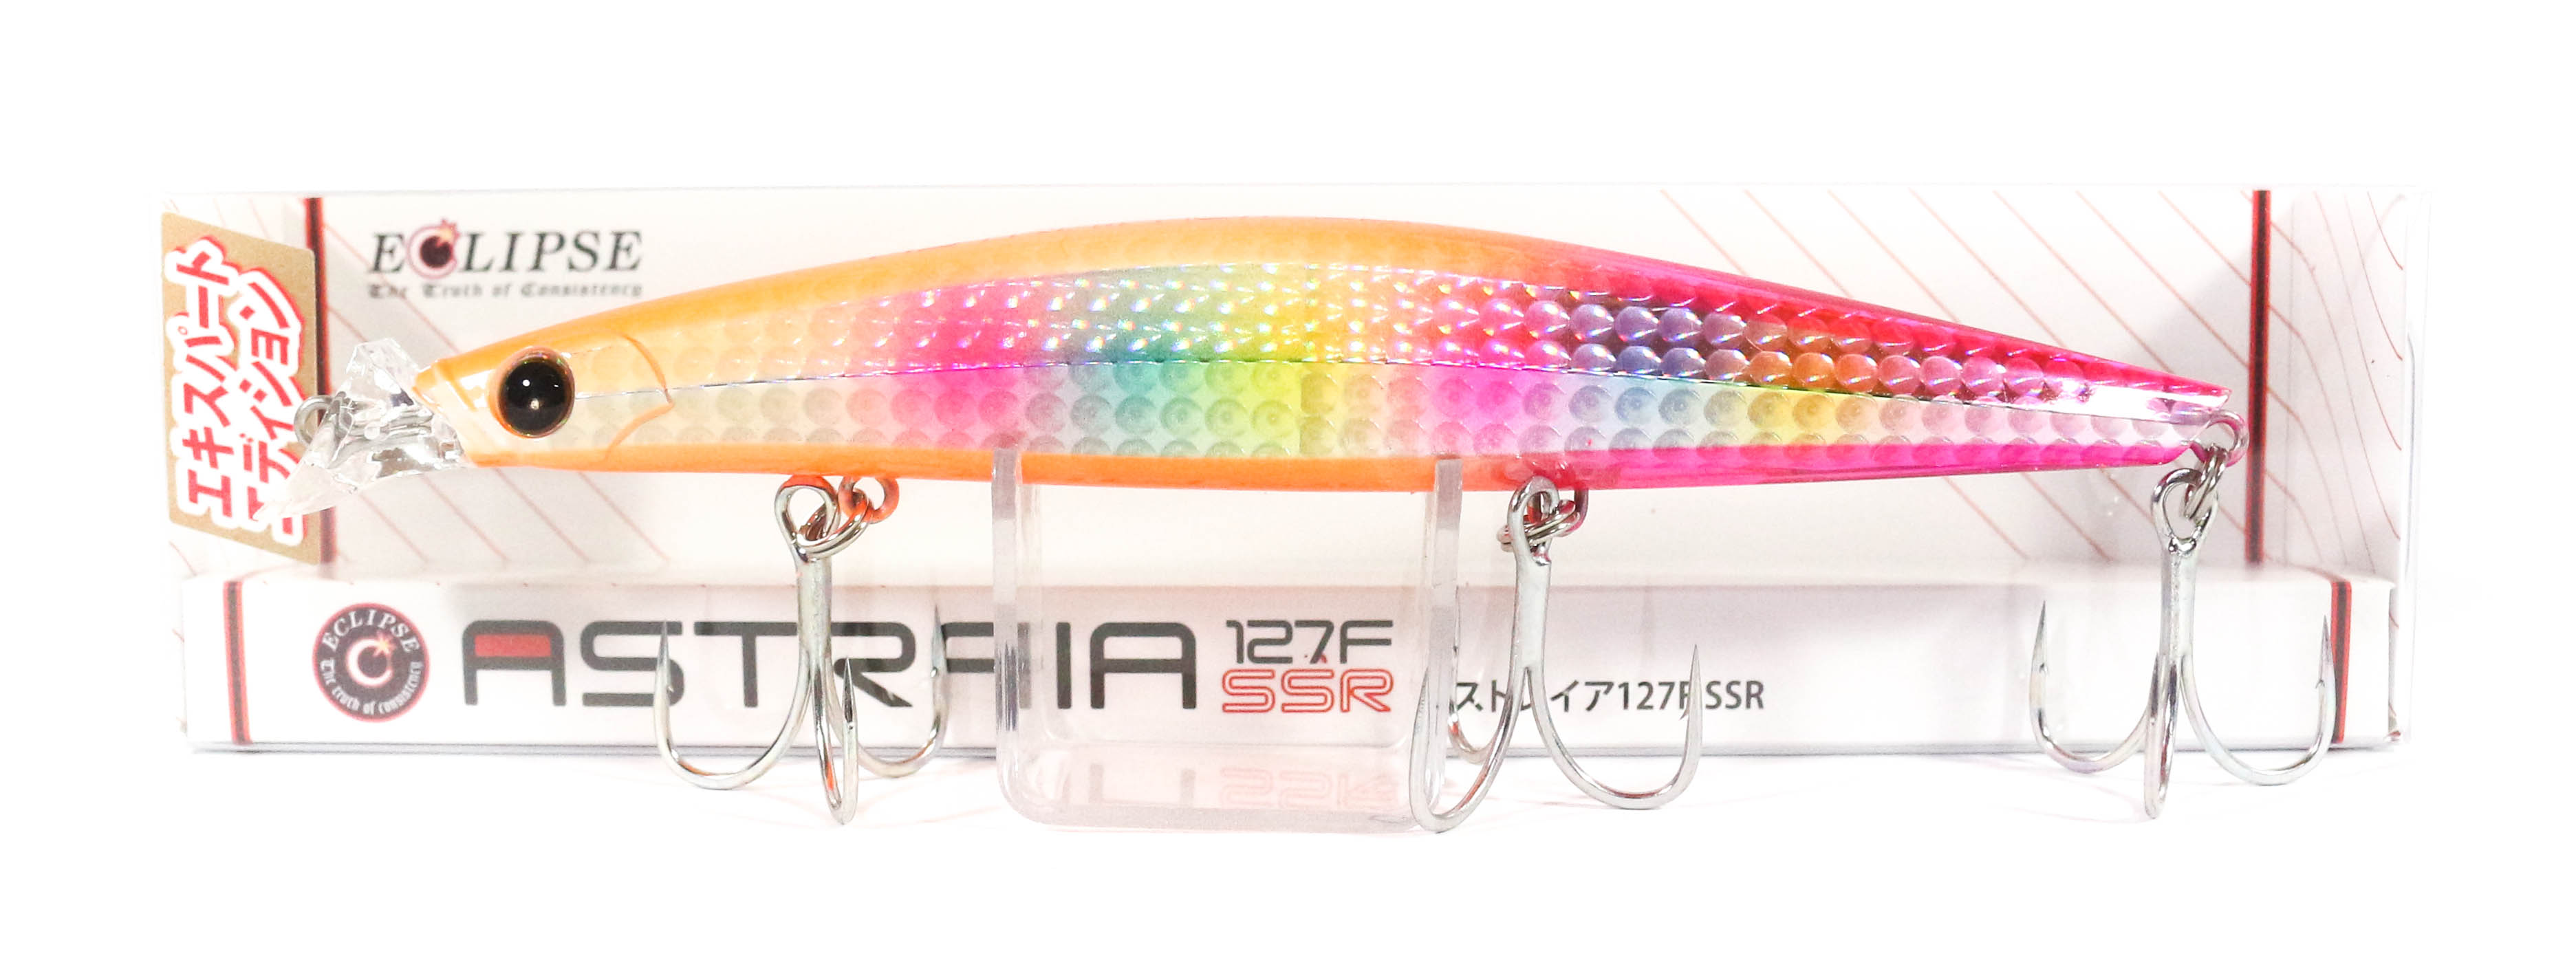 Sale Eclipse Astraia 127F SSR Floating Lure 151 (4306)